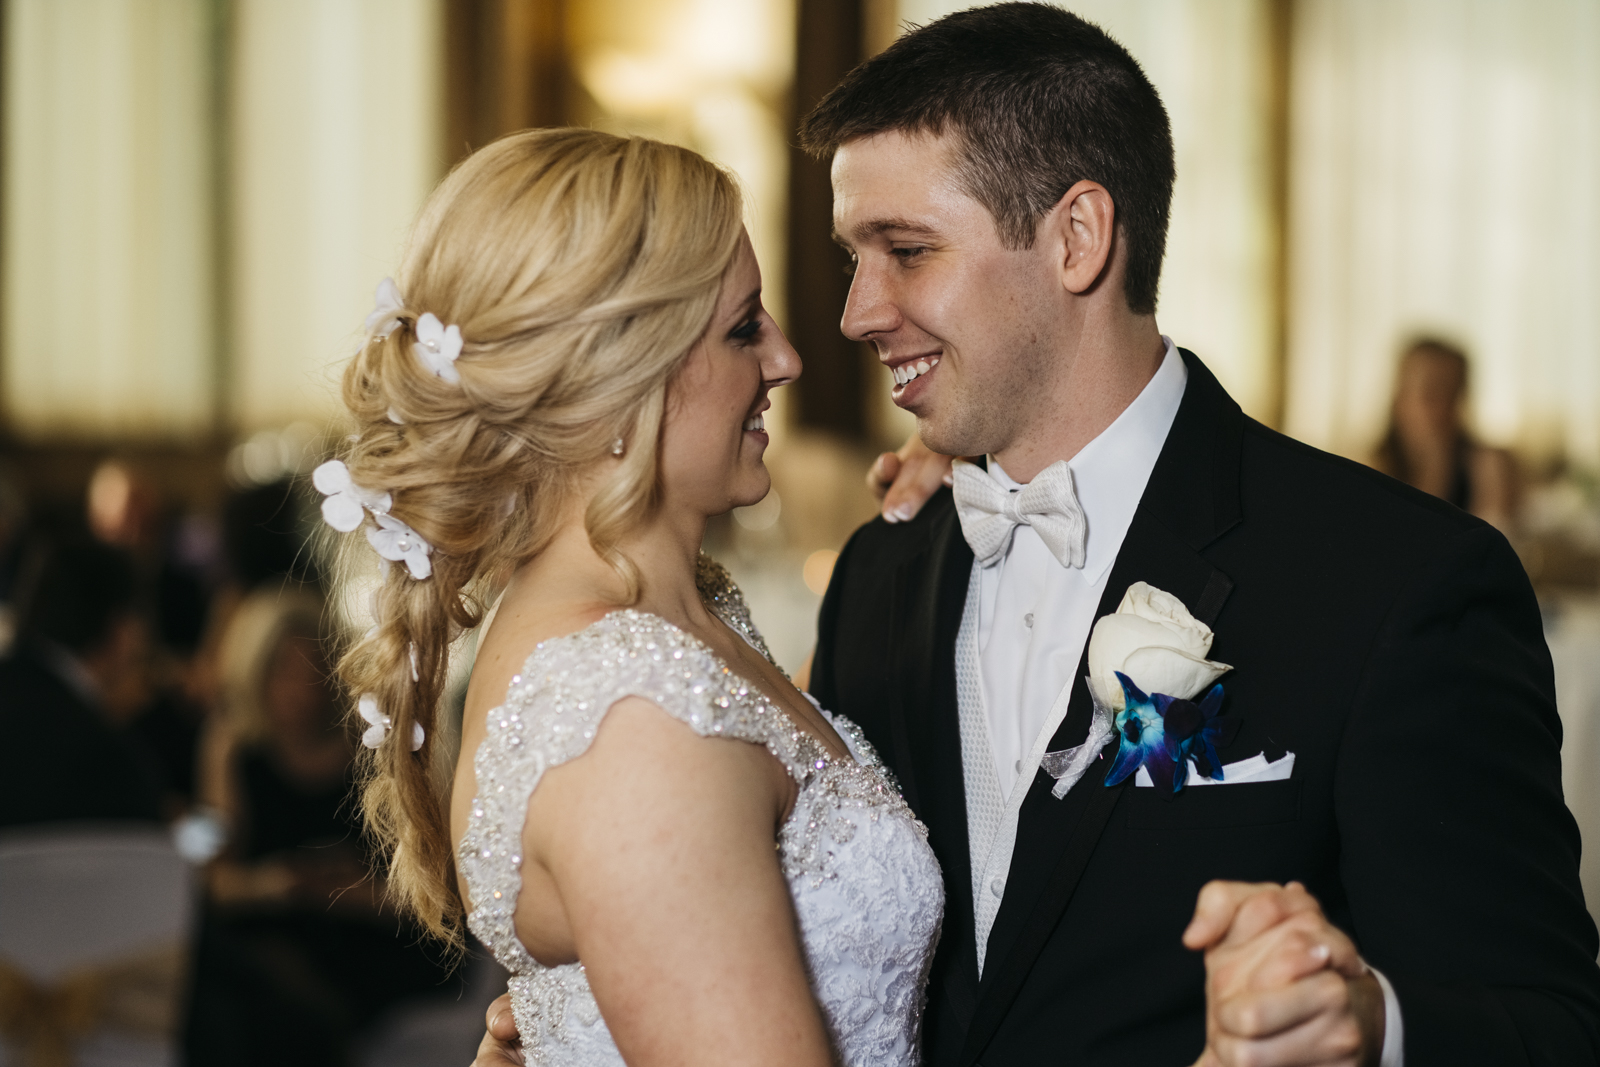 First dance for bride and groom at wedding reception in Plymouth, Michigan.